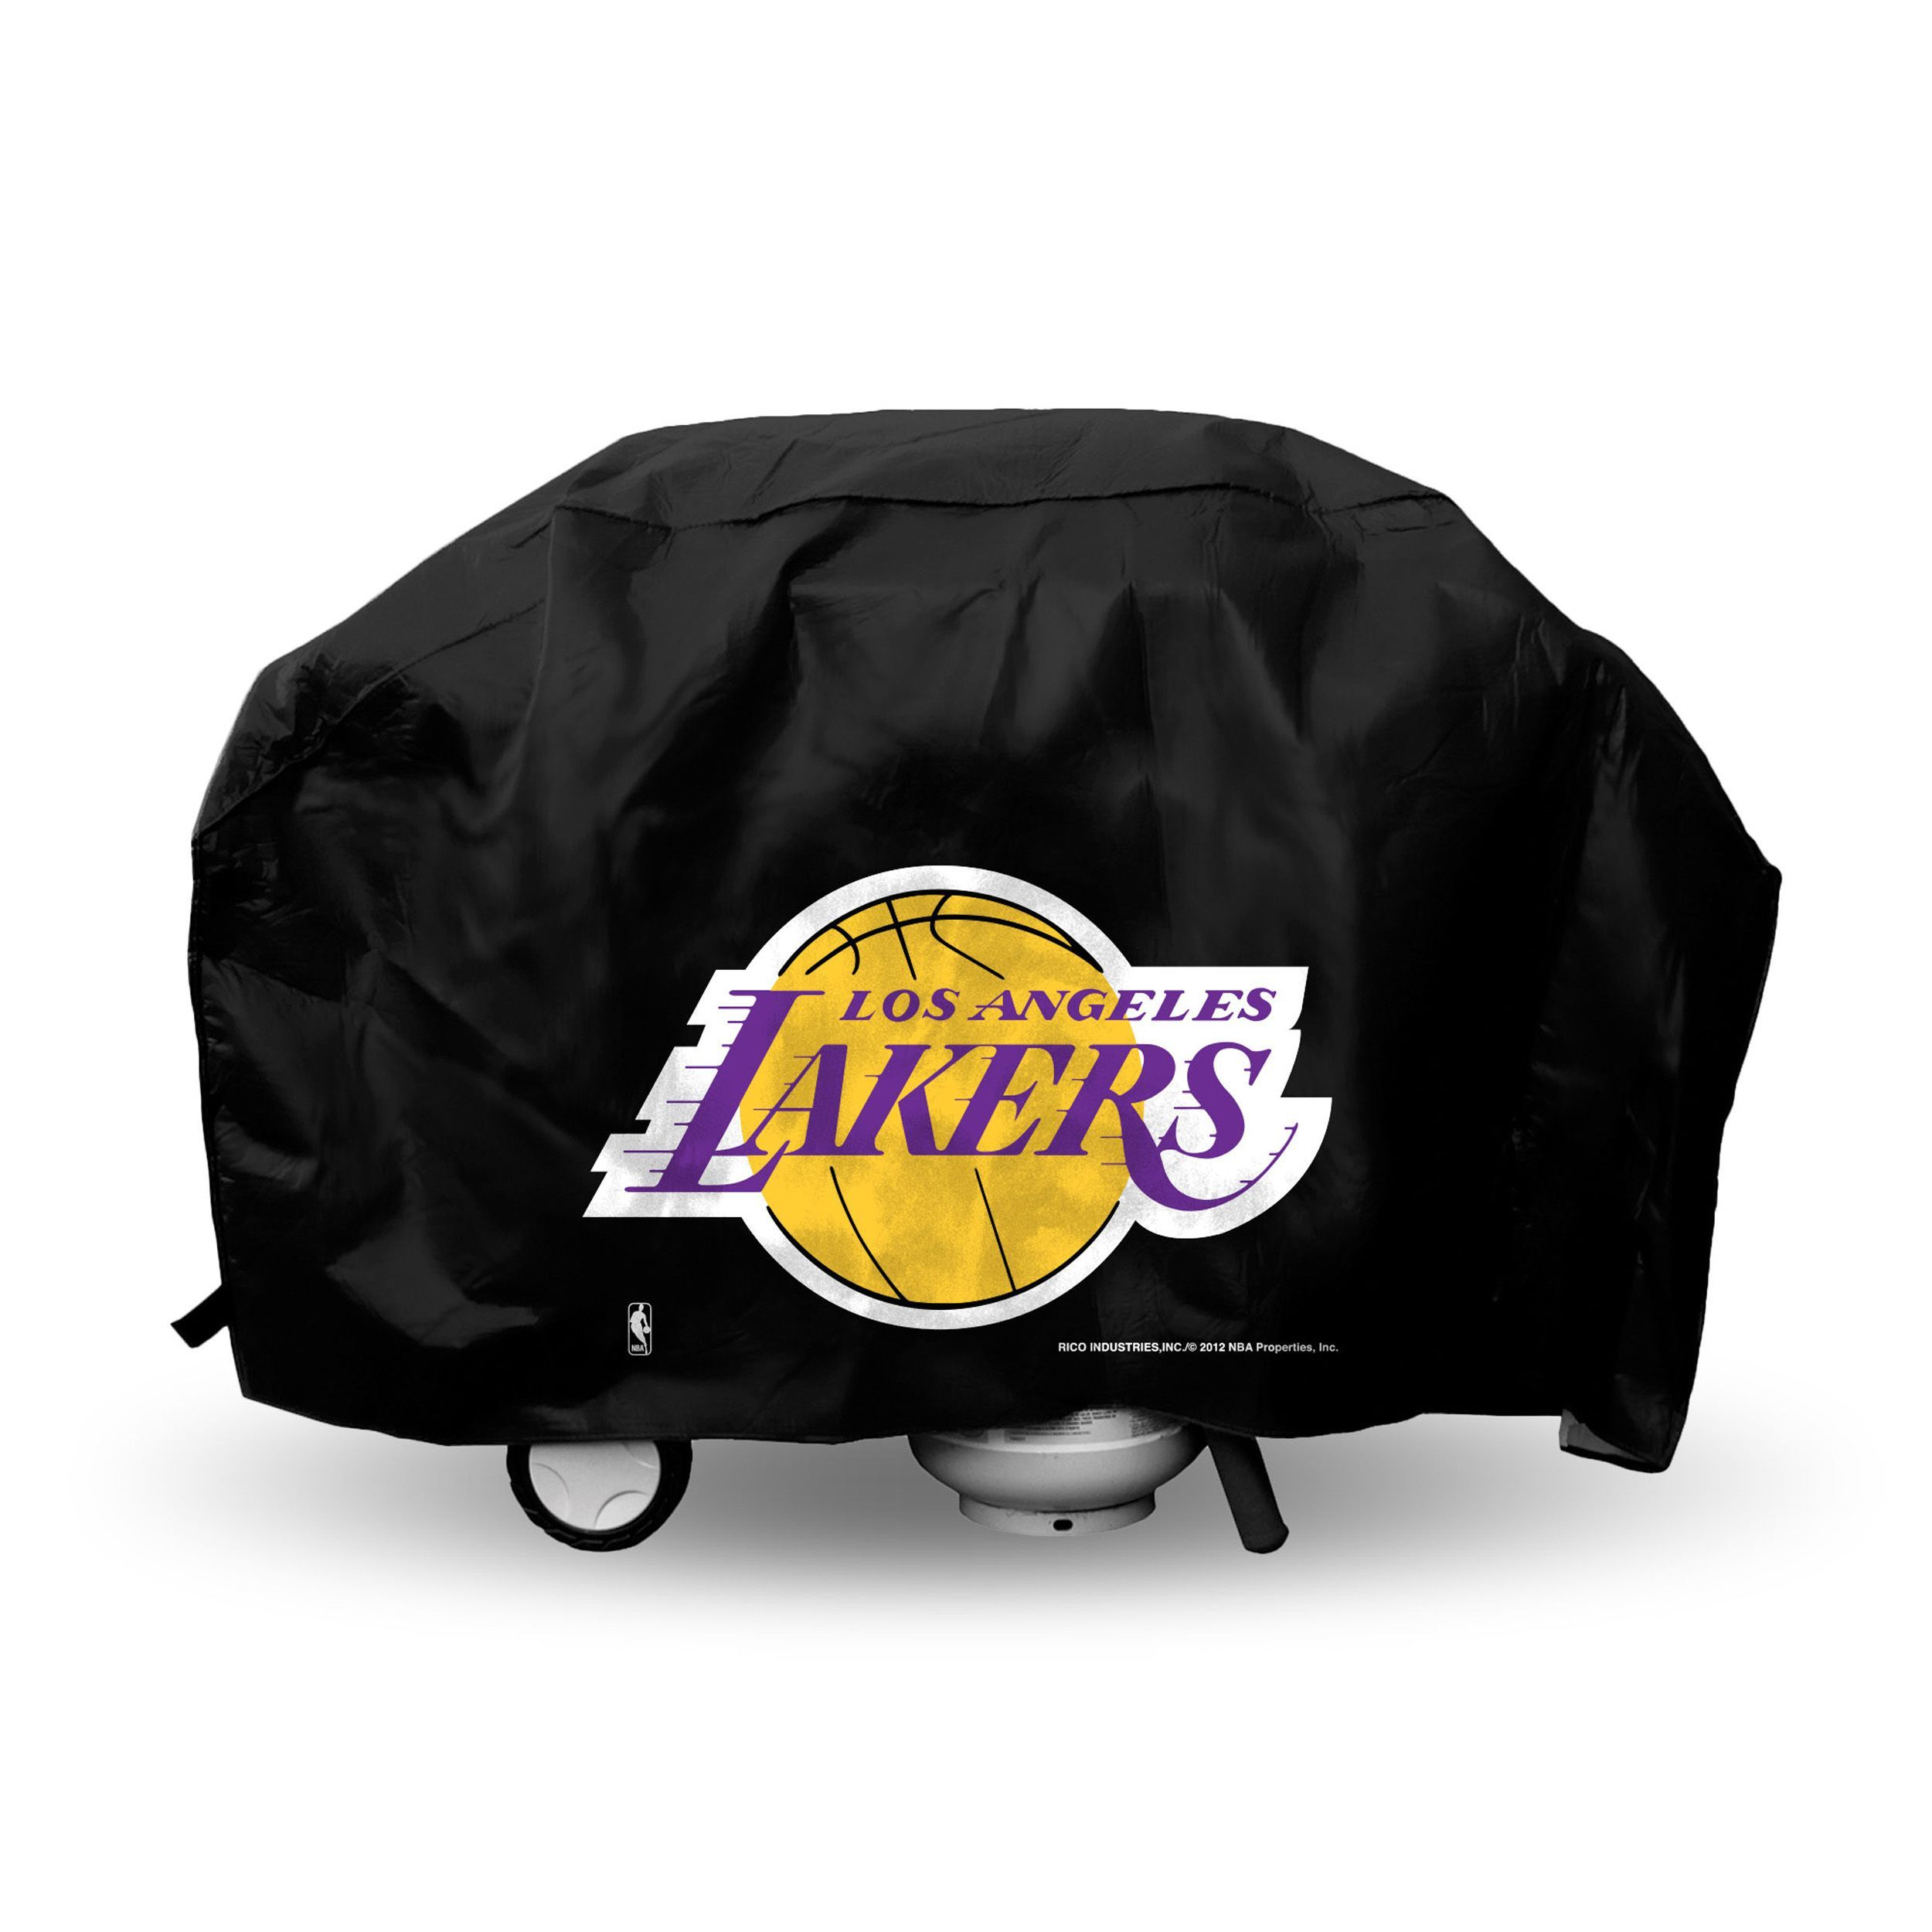 Rico Industries Los Angeles Lakers 68 inch Economy Grill Cover